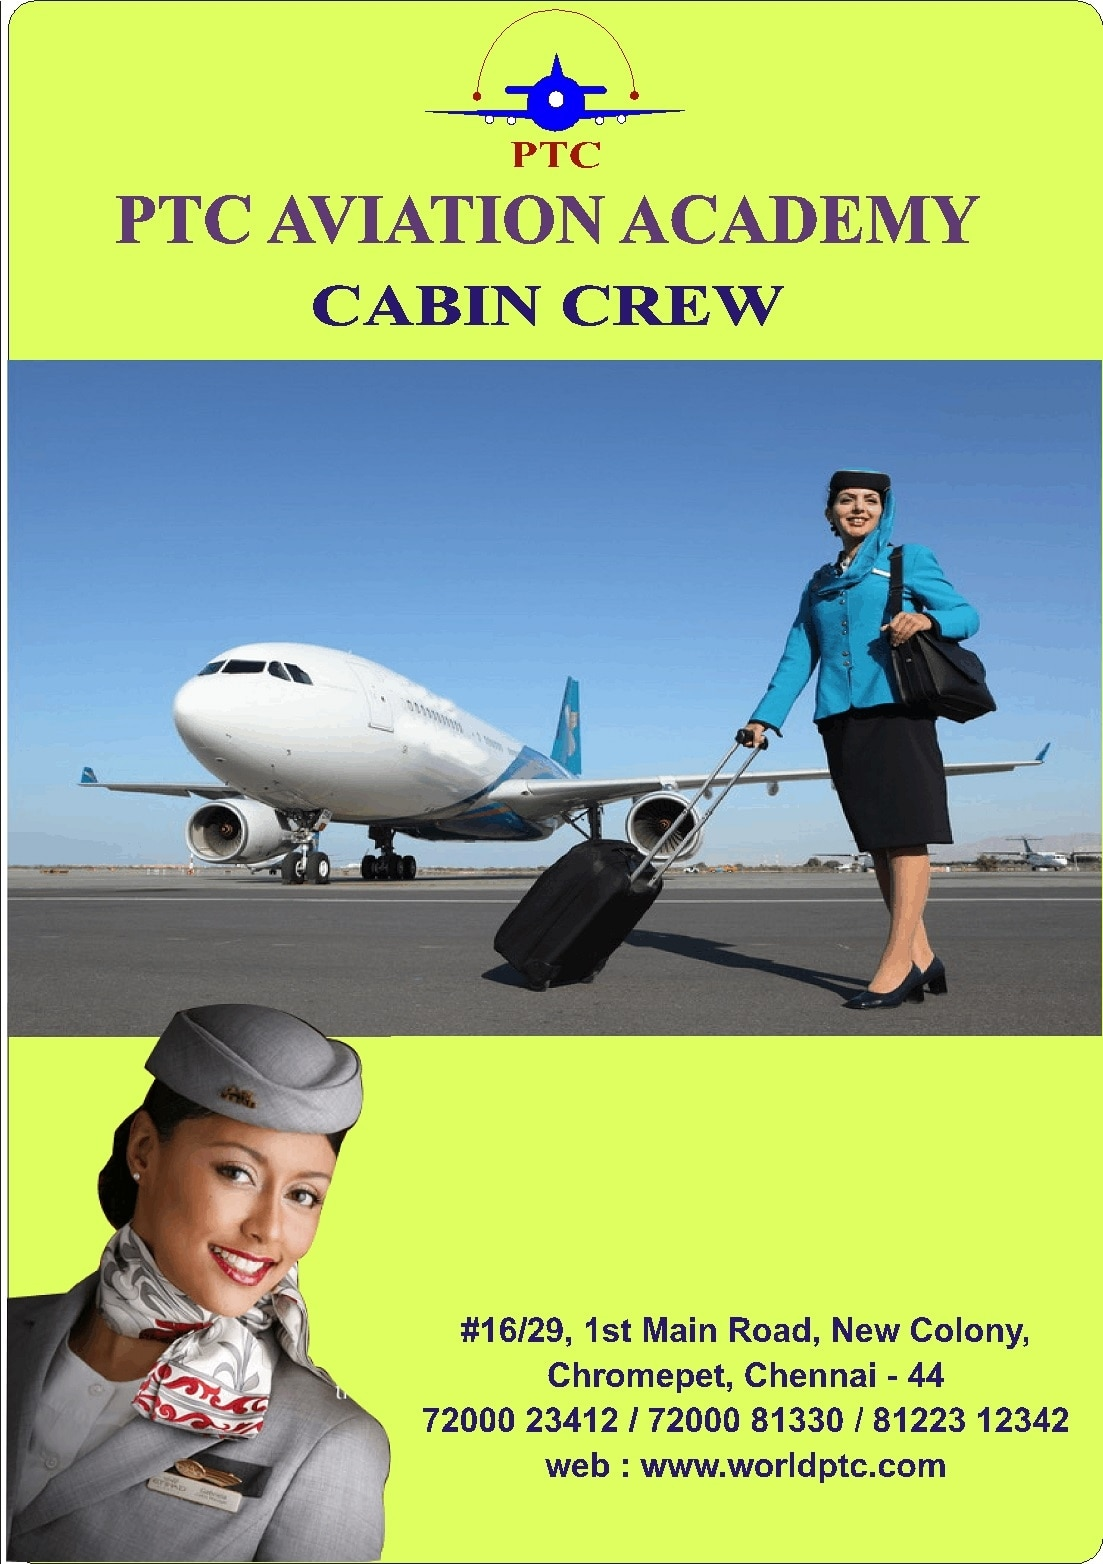 Air Hostess Jobs. Job Description Female AIR HOSTESSES AND CABIN CREW , Roles and responsibility - Handling Clients and passengers, Pleasing Personality and Good Comm skills, willing to travel on short notice, for various leading domestic and international airline clients and chartered flights,   (Only female positions) Job Requirement  Required Female candidates having pleasing personality. Good communication skills Height should not be less than 5.2 (155)cm. Age 18-28 Years Should not be overweight or underweight, Should not have any visible marks, scars and tattoos. Fresher +2 can also apply  Job location- Delhi, Mumbai, Hyderabad, Chennai, Bangalore, Kolkata, Jaipur, Lucknow, Ranchi etc.  Airlines, Cabin Crew, Air Hostess, Ground Staff Jobs  . Candidate Requirement  * Age Limit 18 to 30 Years  * Height Minimum 152 cm  * Weight- According To Height  * Good Communication Skills & Personality  * Ready To Relocate Any Where In India . Jobs in Airlines Like - Jet Airways, Vistara, Air Asia, Indigo, Go Air, Air Costa, Spice Jet  . Documents Required : -  * Photocopy Of ID Proof * Photocopy Of All Educational Certificates * 8 Passport Size Photographs * Resume  PH:7200023412, 7200015600